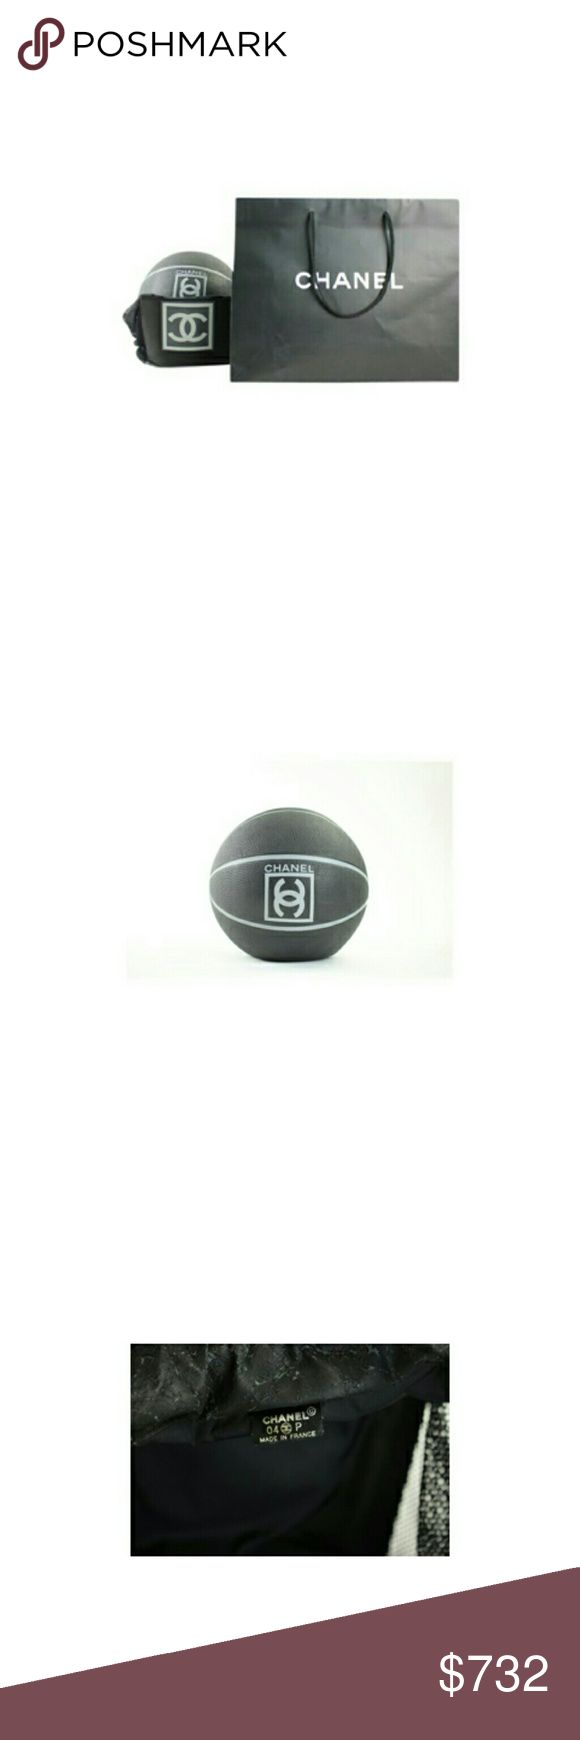 """Chanel  ( ULTRA RARE ) CC Sports Basketball 214142 Previously owned.  Date/style Code: 04-P  Made In: France.Gently Used  SIZE:9.5""""L x 9.5""""H x 9.5""""W  OVERALL EXCELLENT CONDITION   Signs of Wear: Ball needs to be inflated. Slight marks from display, never used to actually play. Carrying case is a bit peeling form age. Shopping bag included as well.  This item does not come with any extra accessories.  Color appearance may vary depending on your monitor settings.  SKU:214142 CHANEL Accessories"""